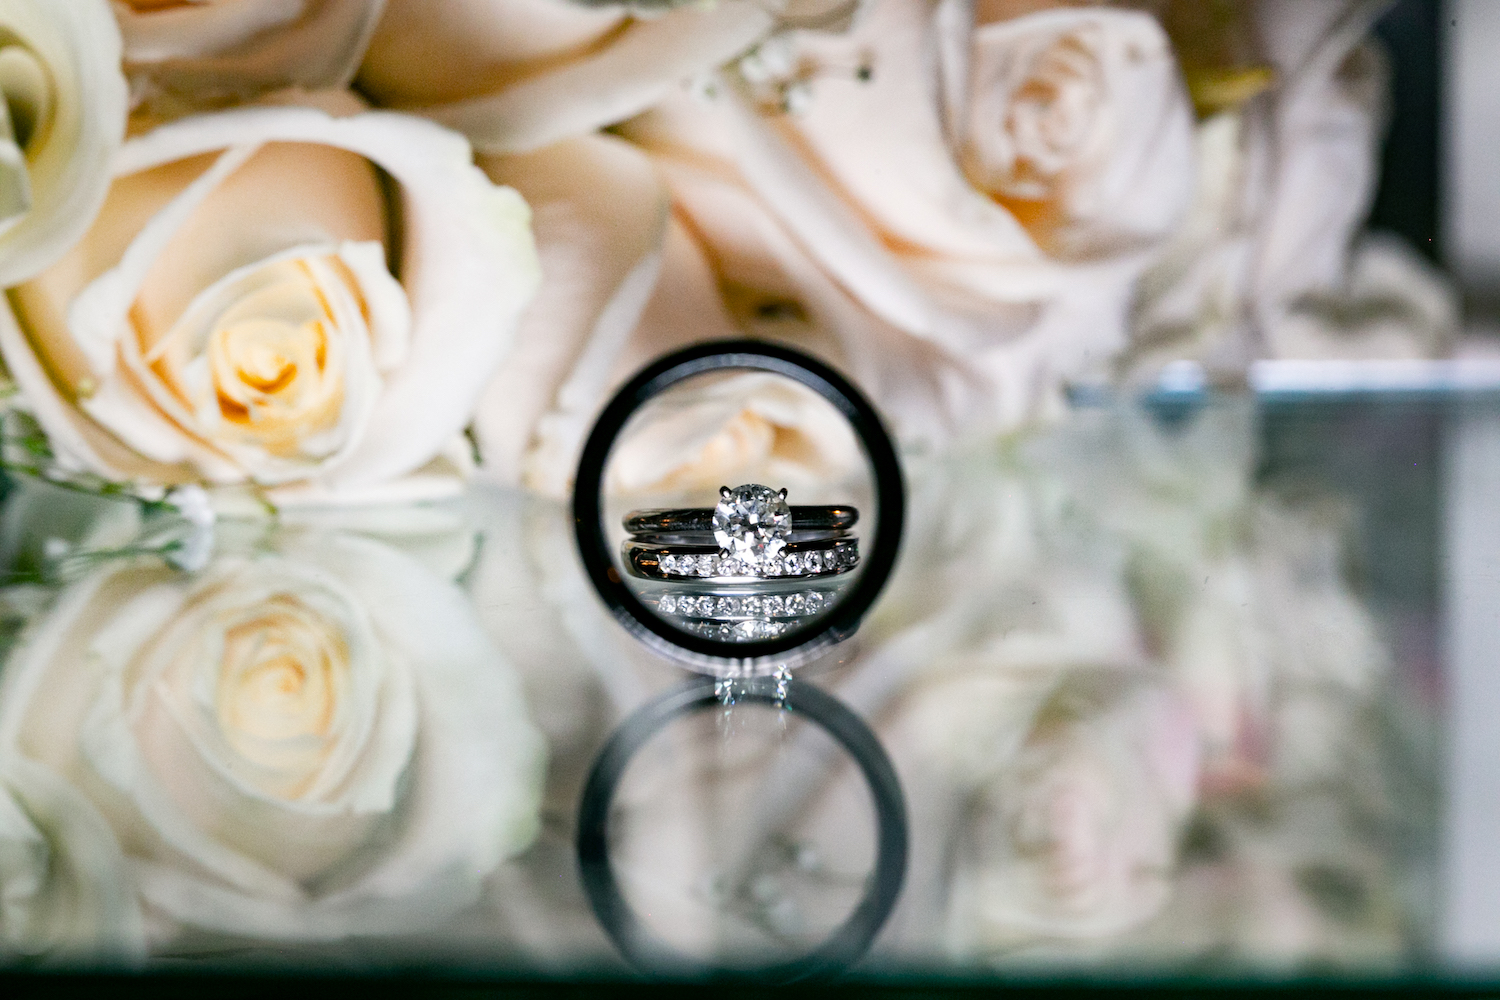 Kristina and Jazz – Wedding Photo Highlights from The Mansion on Main Street in Voorhees Township, NJ